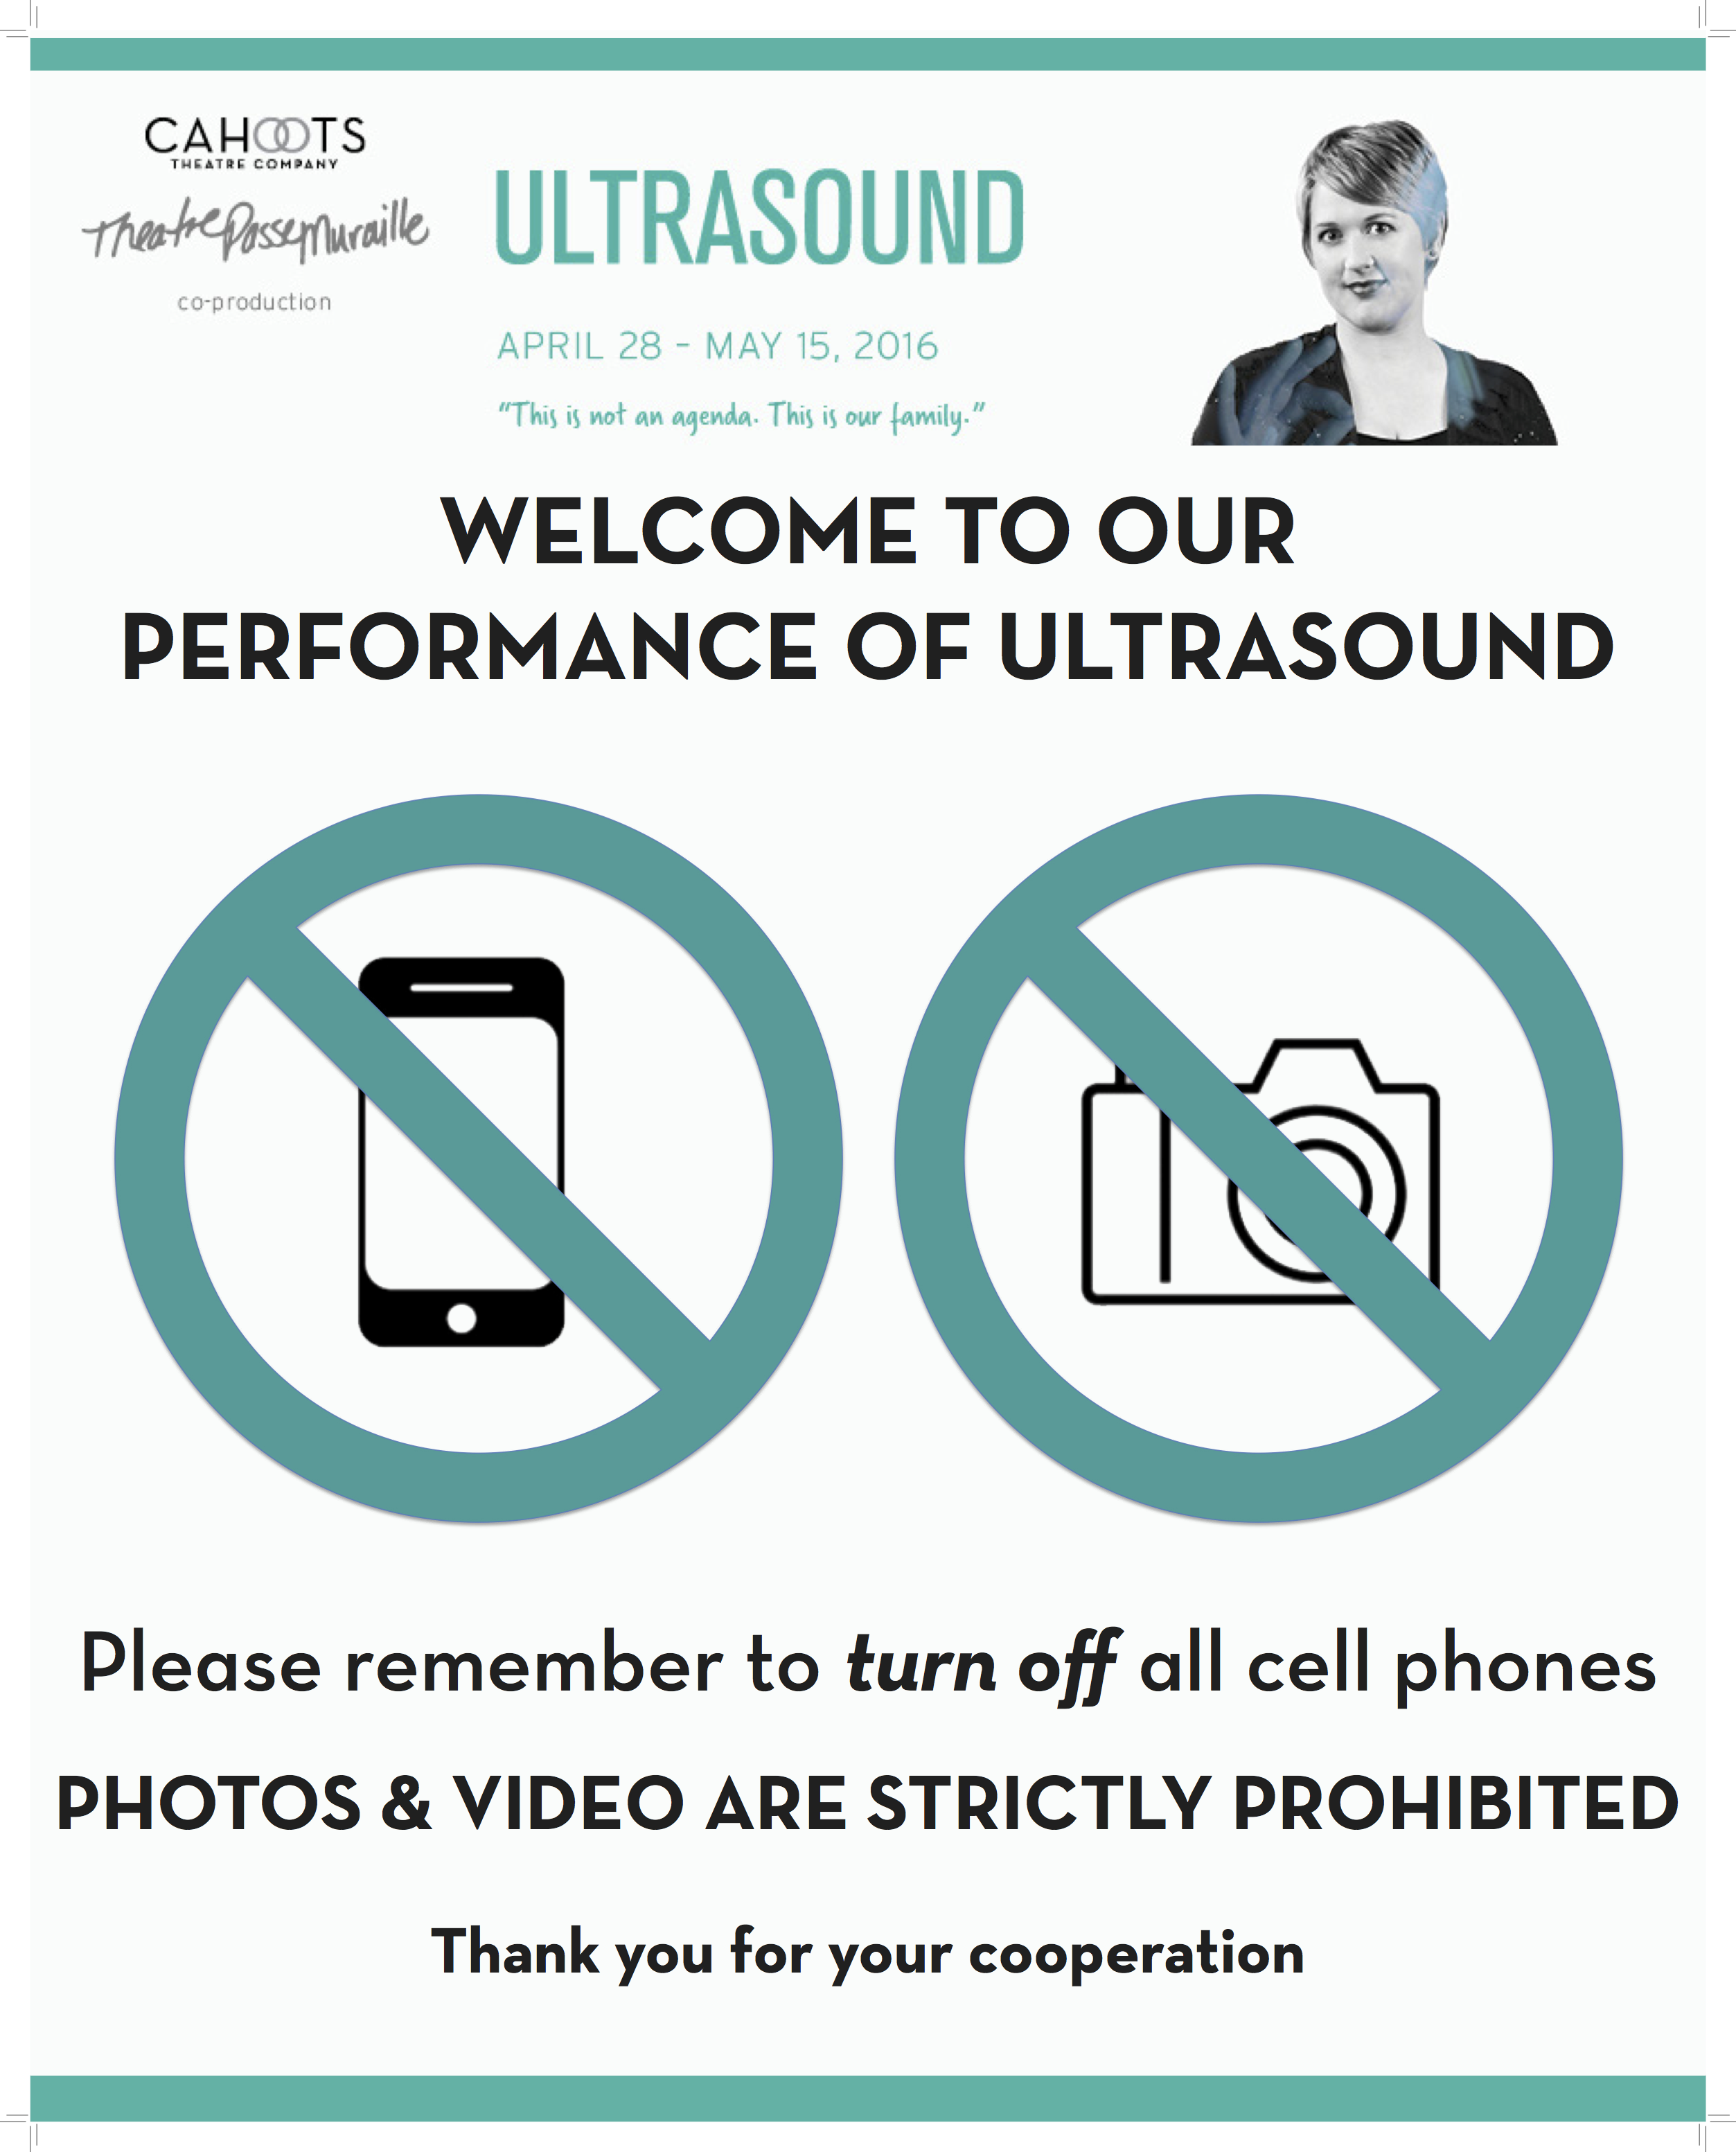 Visual signage used to show there is not photography or mobile use during the performance